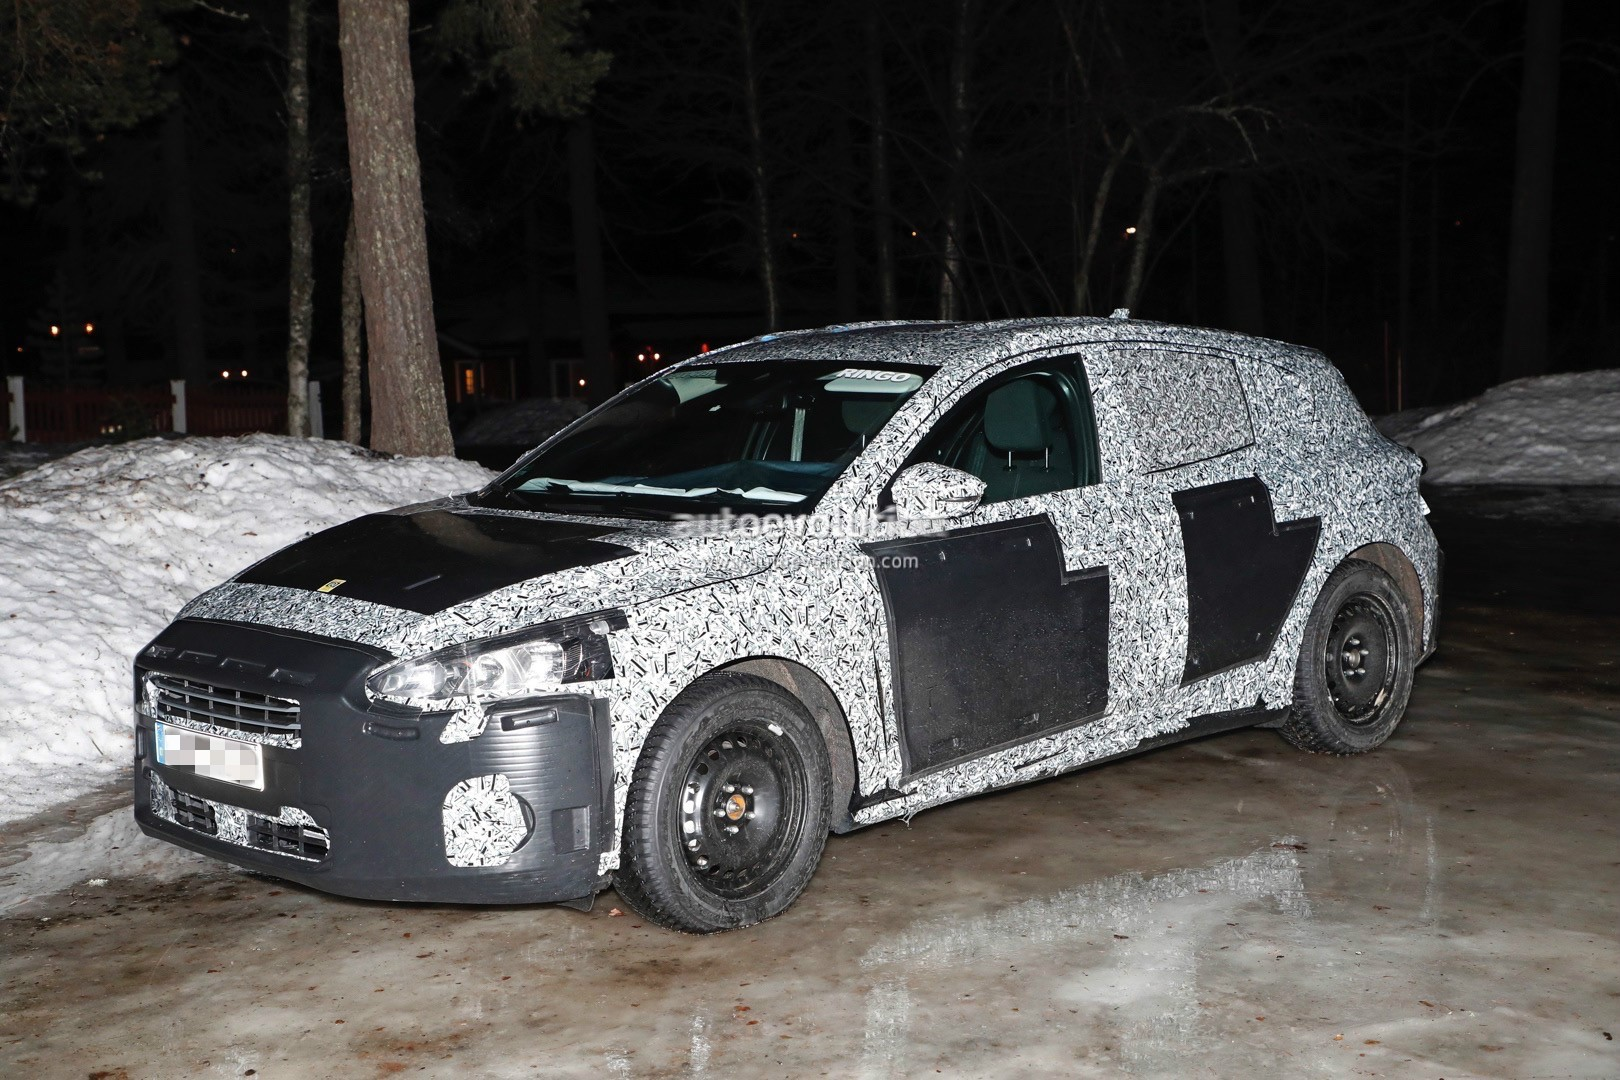 2018 Ford Focus (Mk4) Spied Wearing Production Body Shell ...